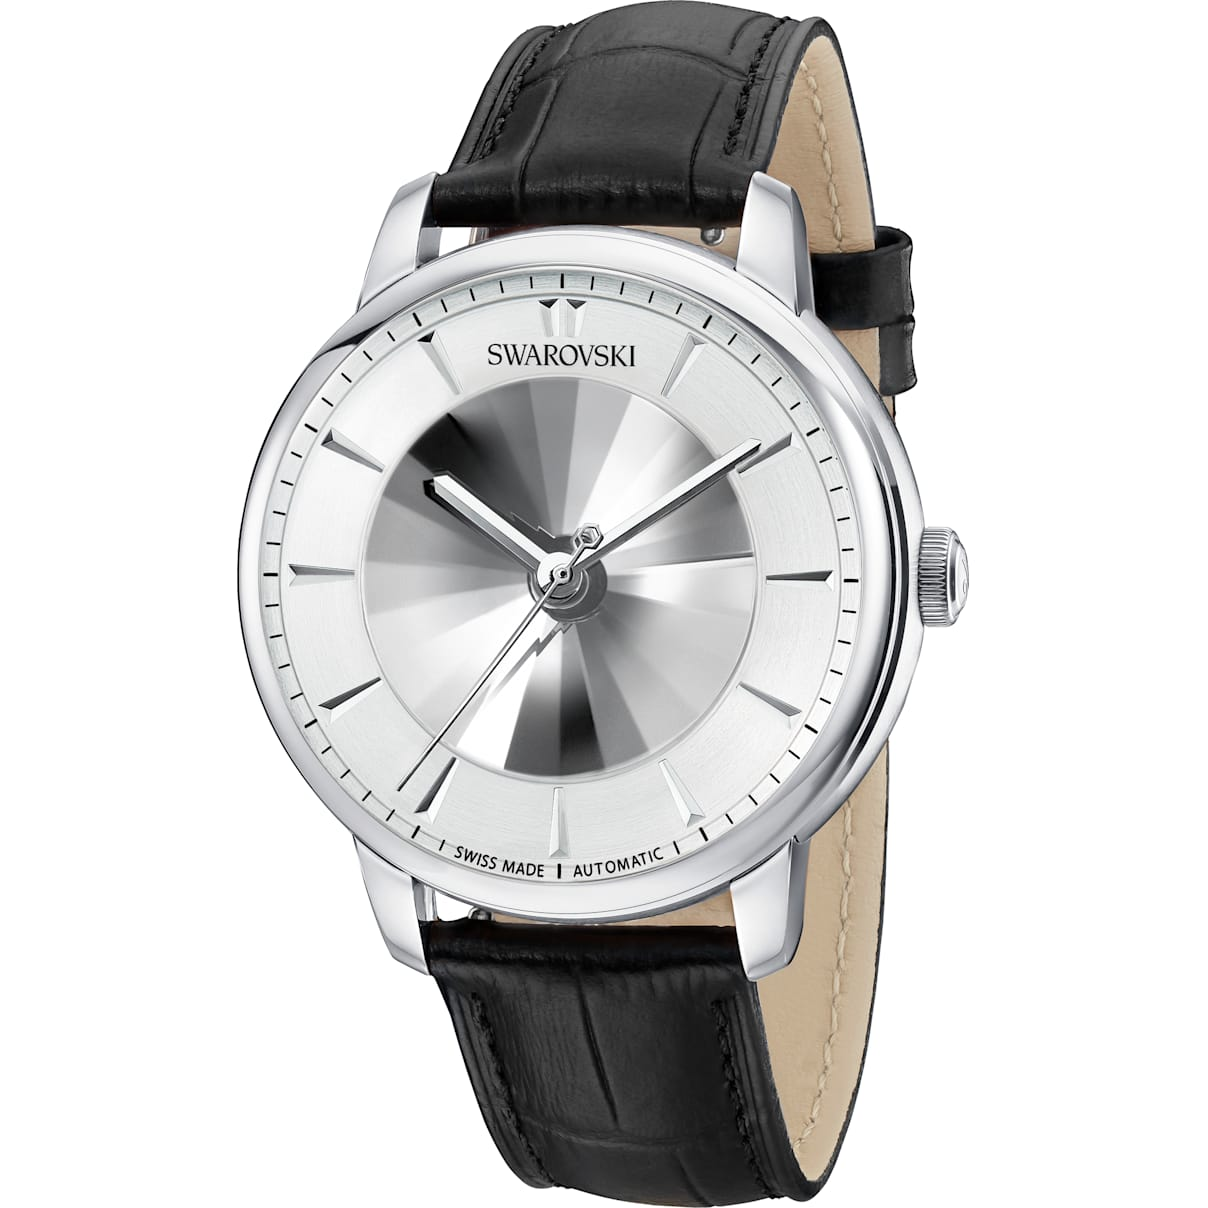 Swarovski Atlantis Limited Edition Automatic Men's Watch, Leather strap, White, Stainless steel